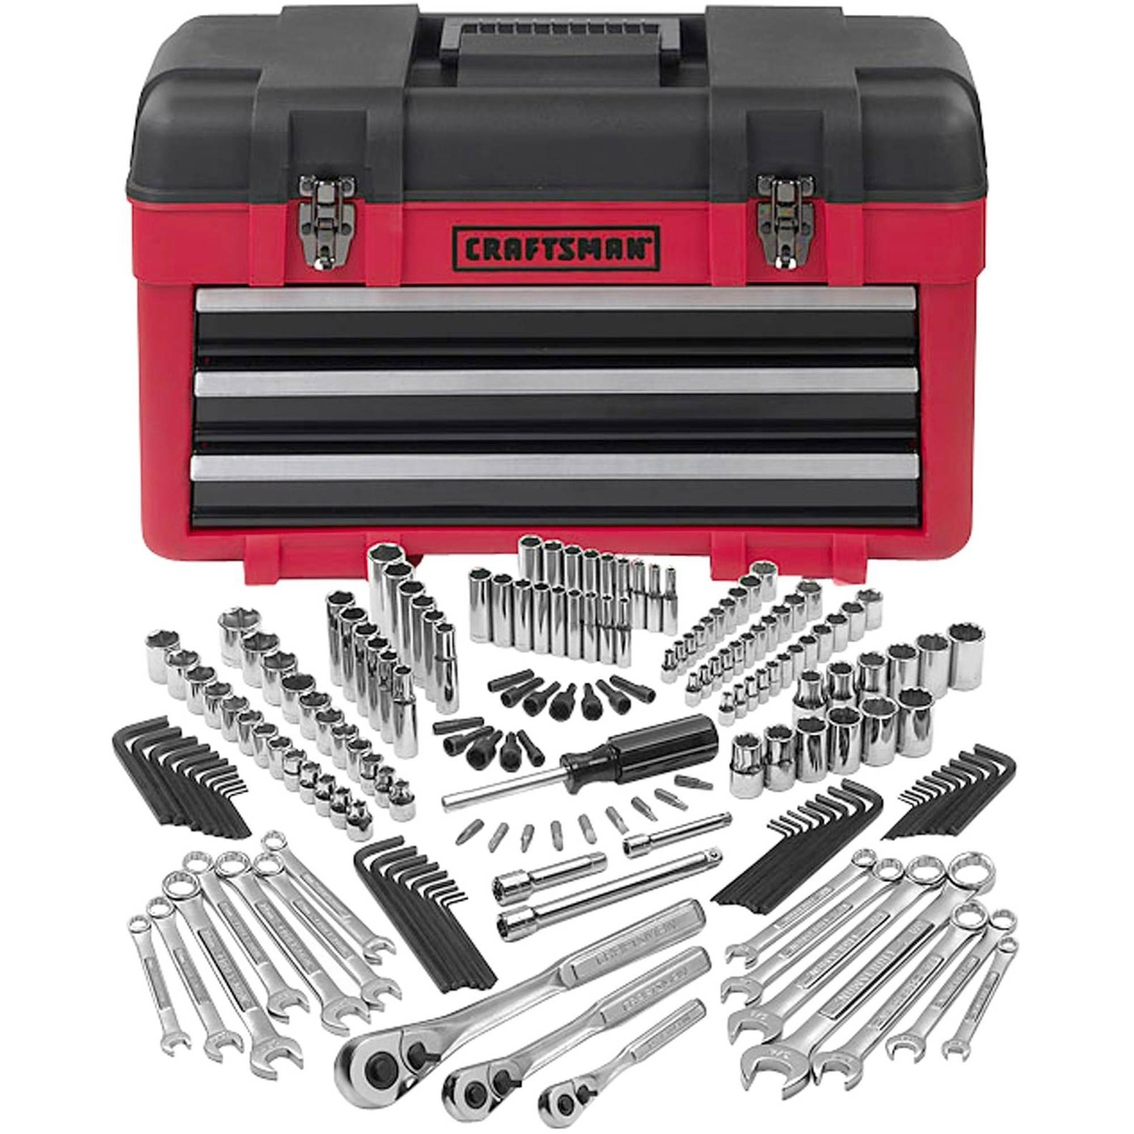 Craftsman 182 Pc. Mechanics Tool Set With 3-drawer Chest | Mixed Sets